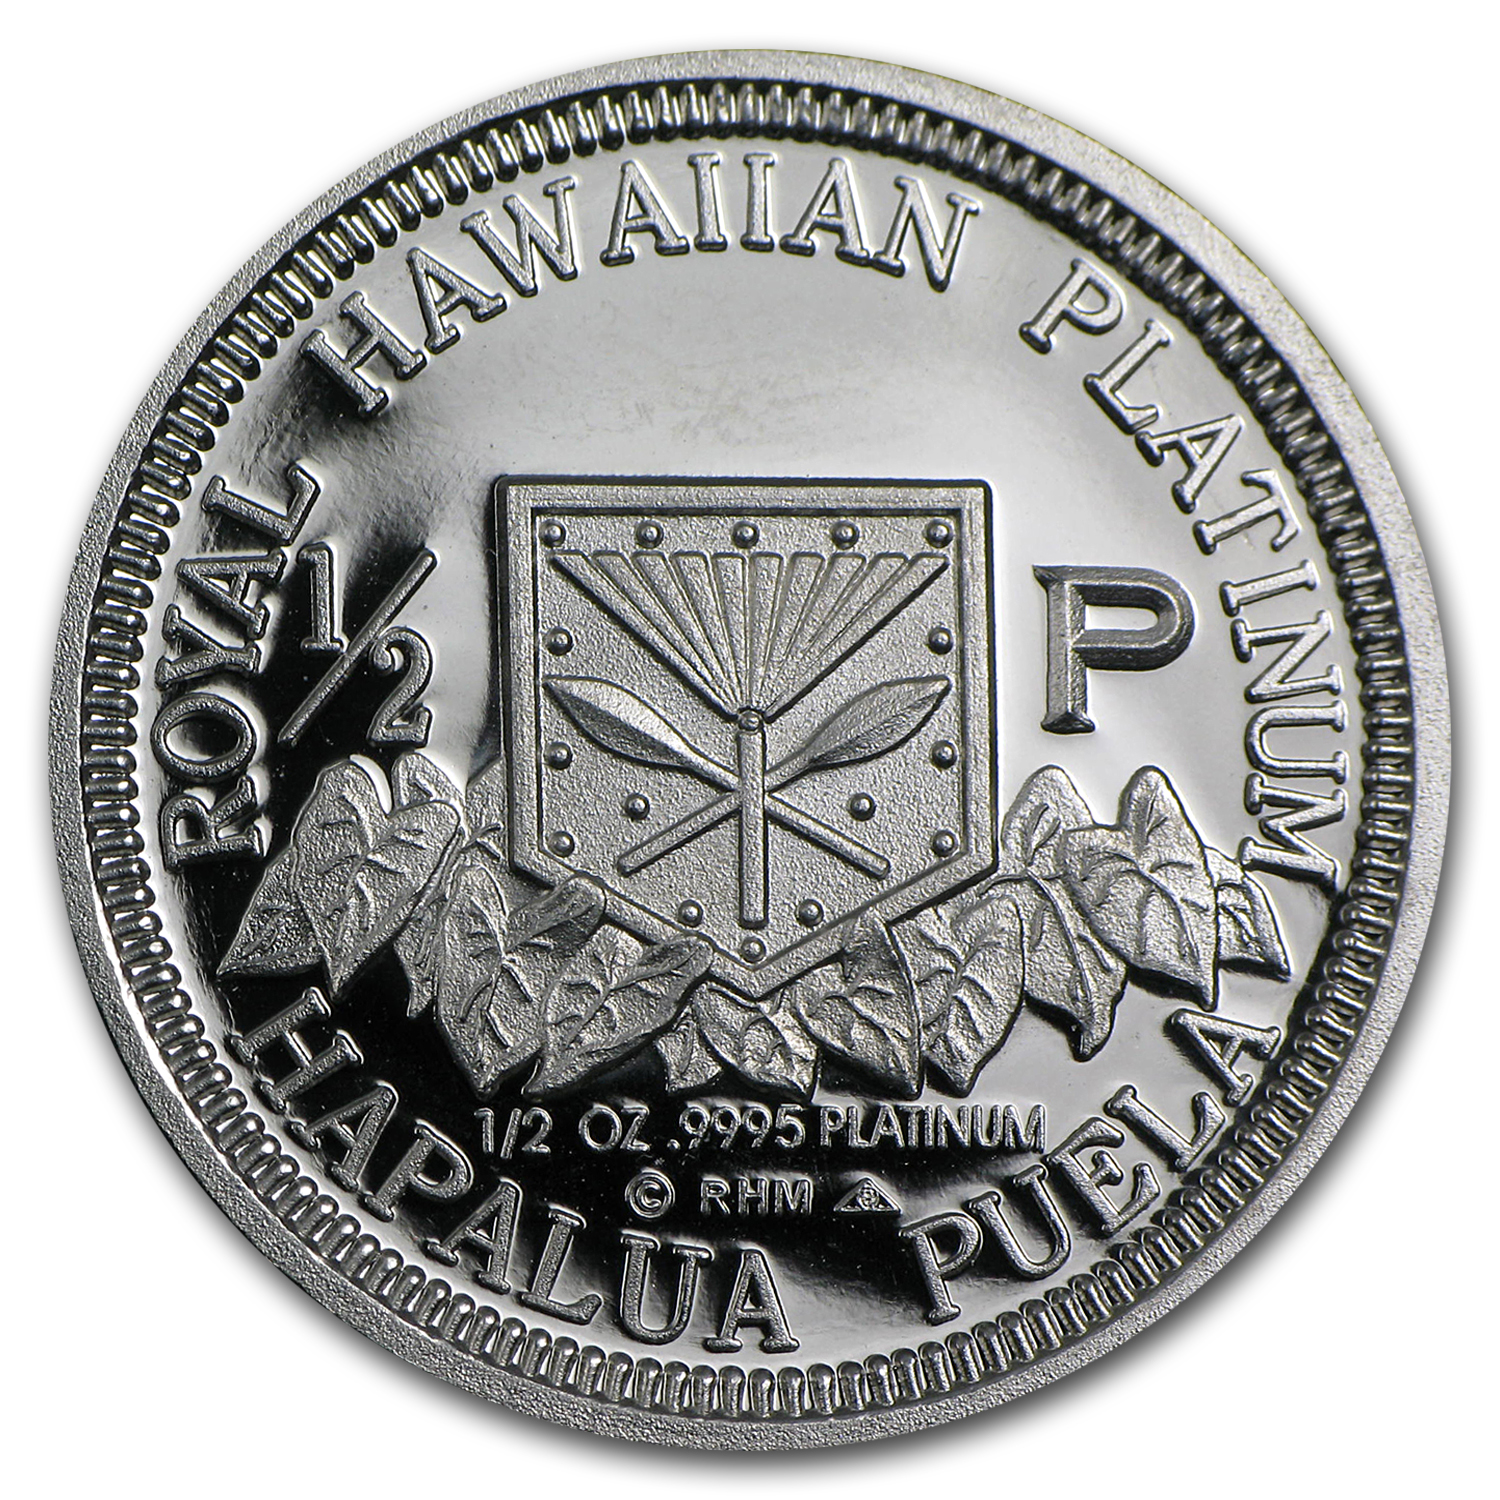 1997 1/2 oz Hawaiian Platinum King (Proof)